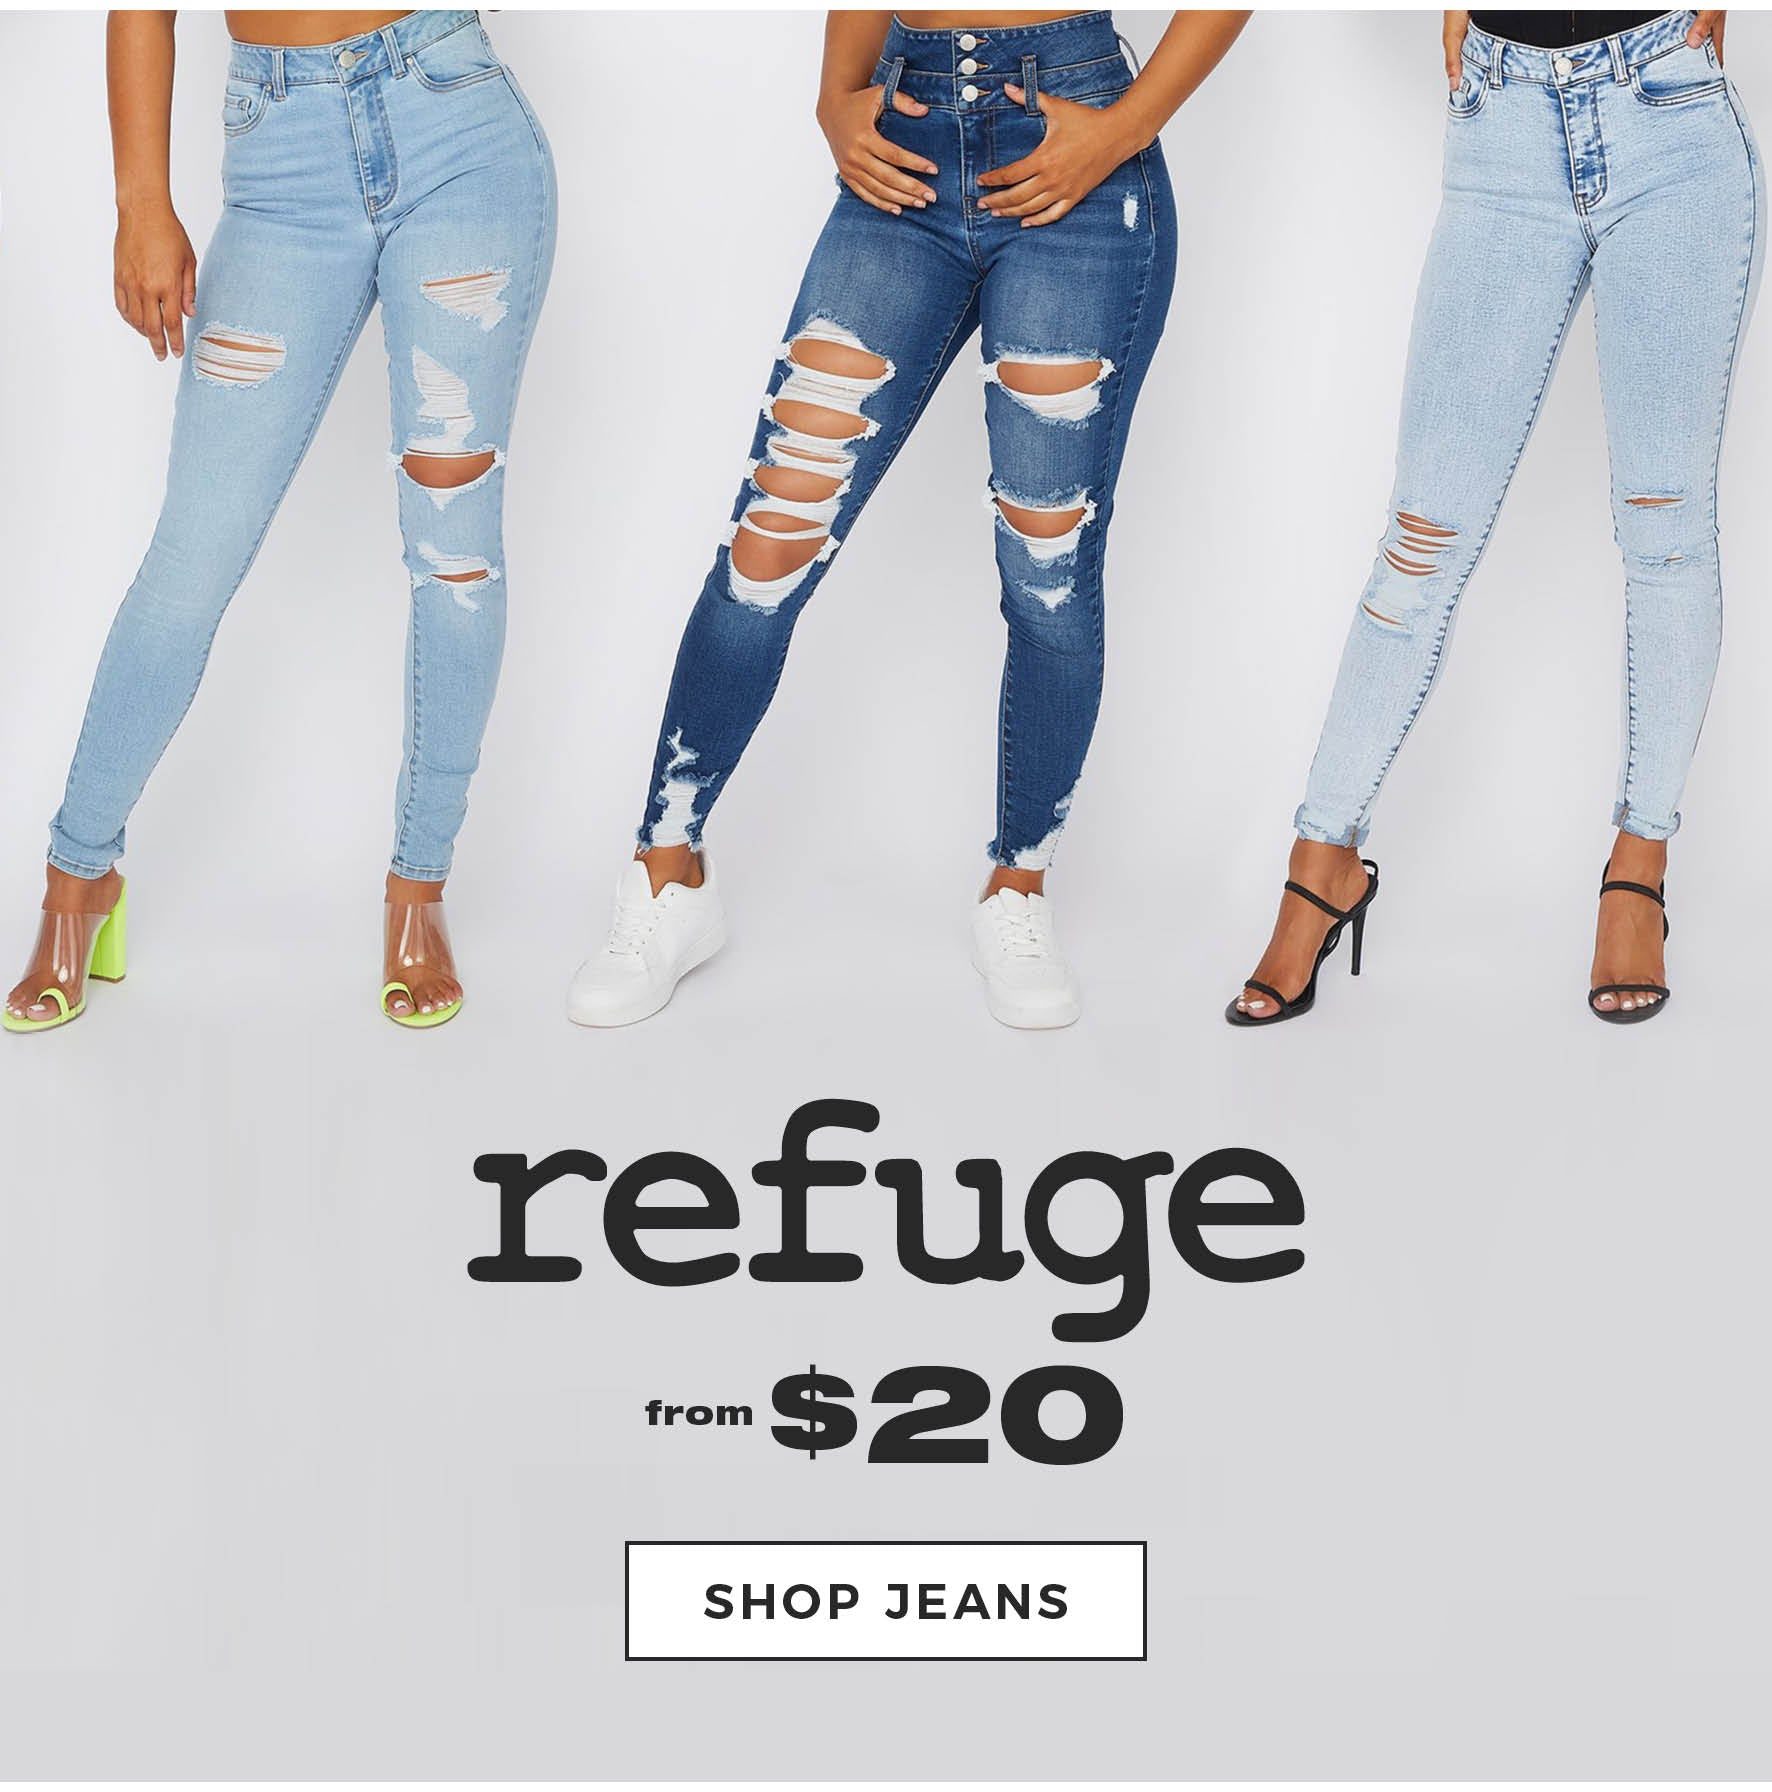 Charlotte Russe | Refuge from $20 - Shop Jeans